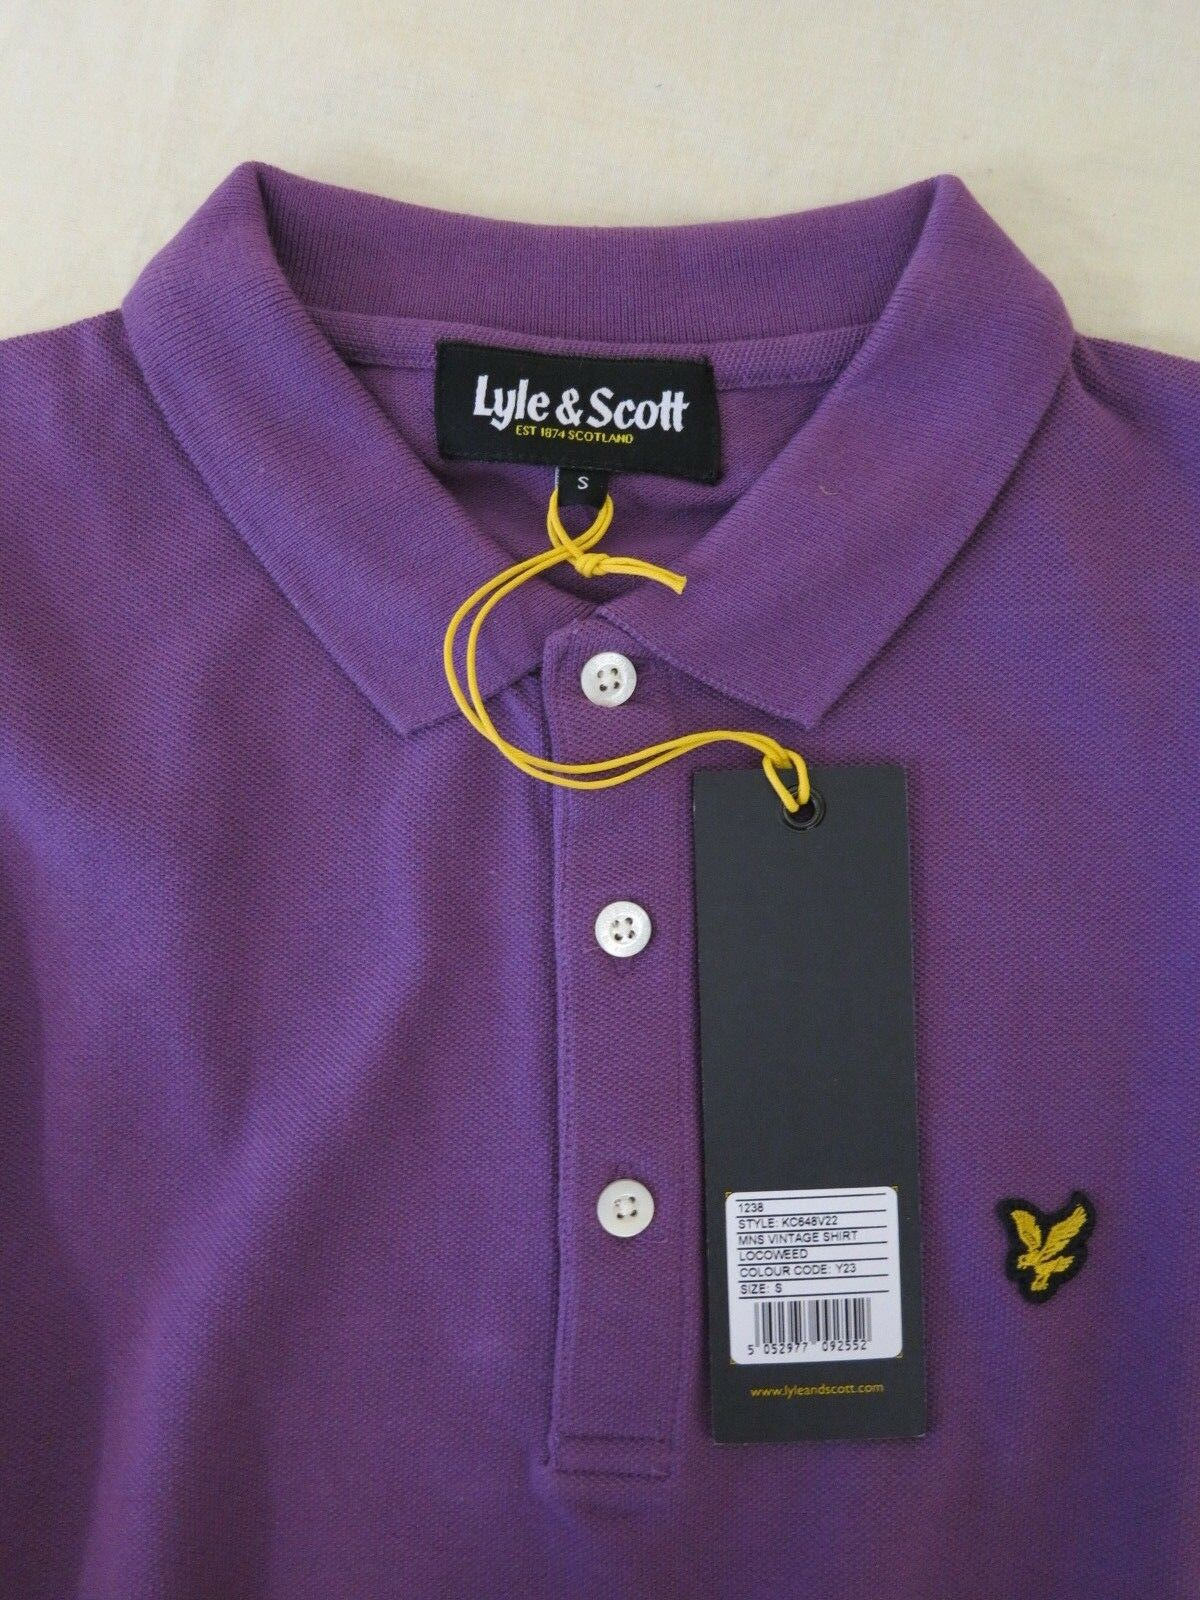 LYLE & SCOTT VINTAGE MENS SHIRT LOCOWEED lila lila lila S 36  CHEST NEW POLO | Qualitativ Hochwertiges Produkt